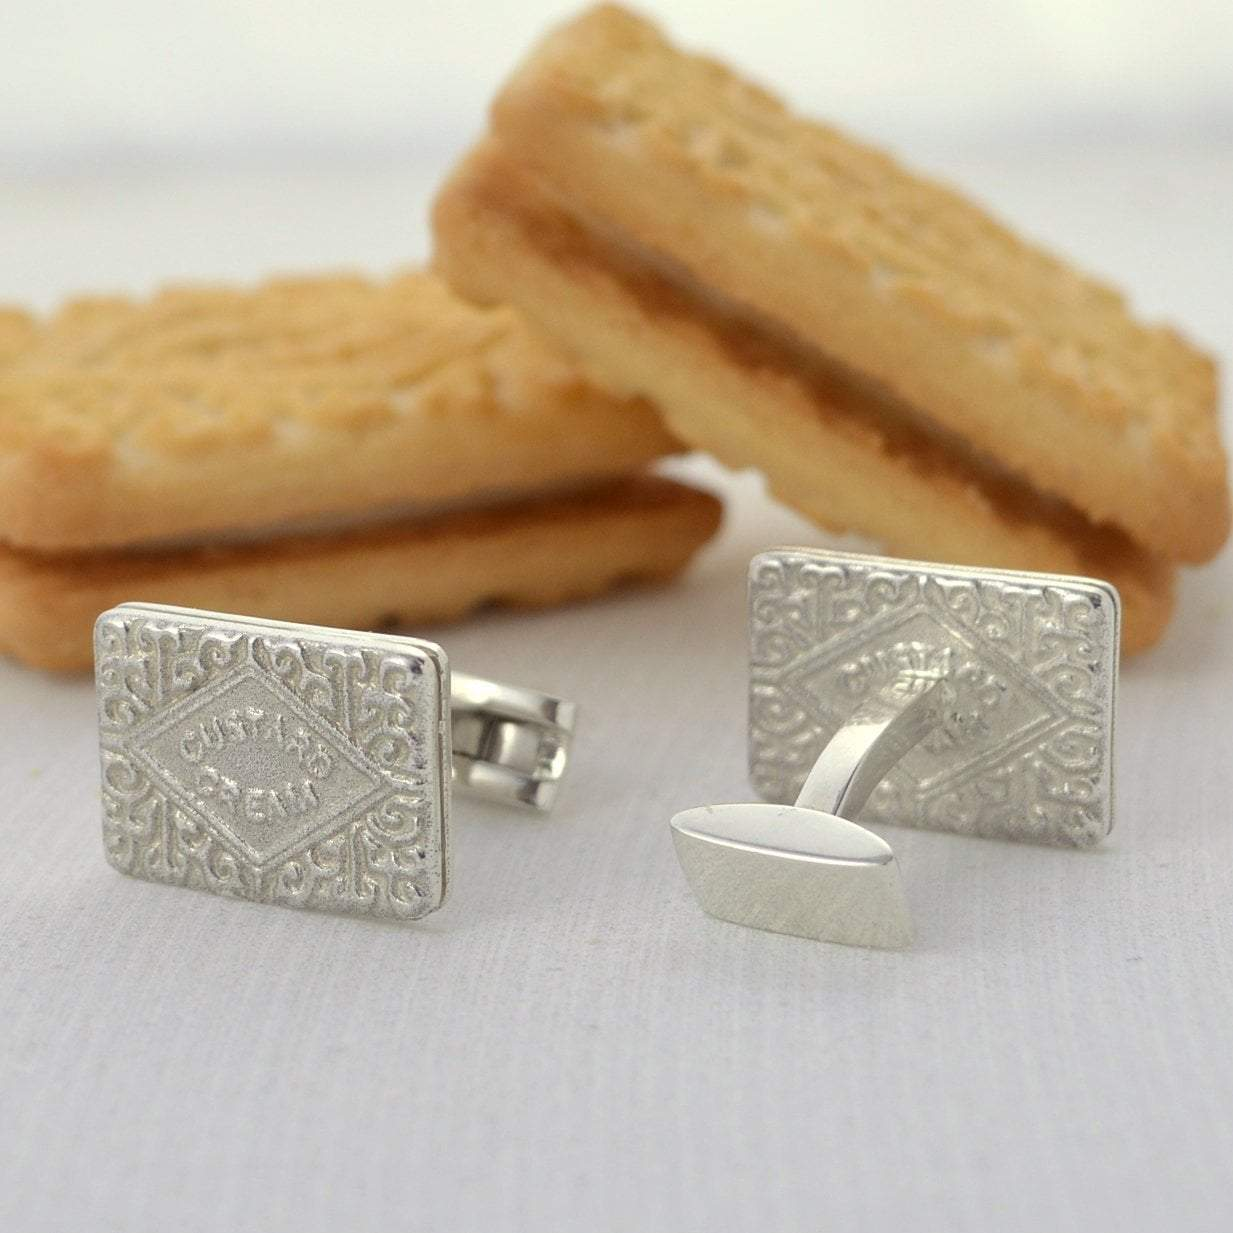 Silver Custard Cream Cufflinks - Lily Charmed